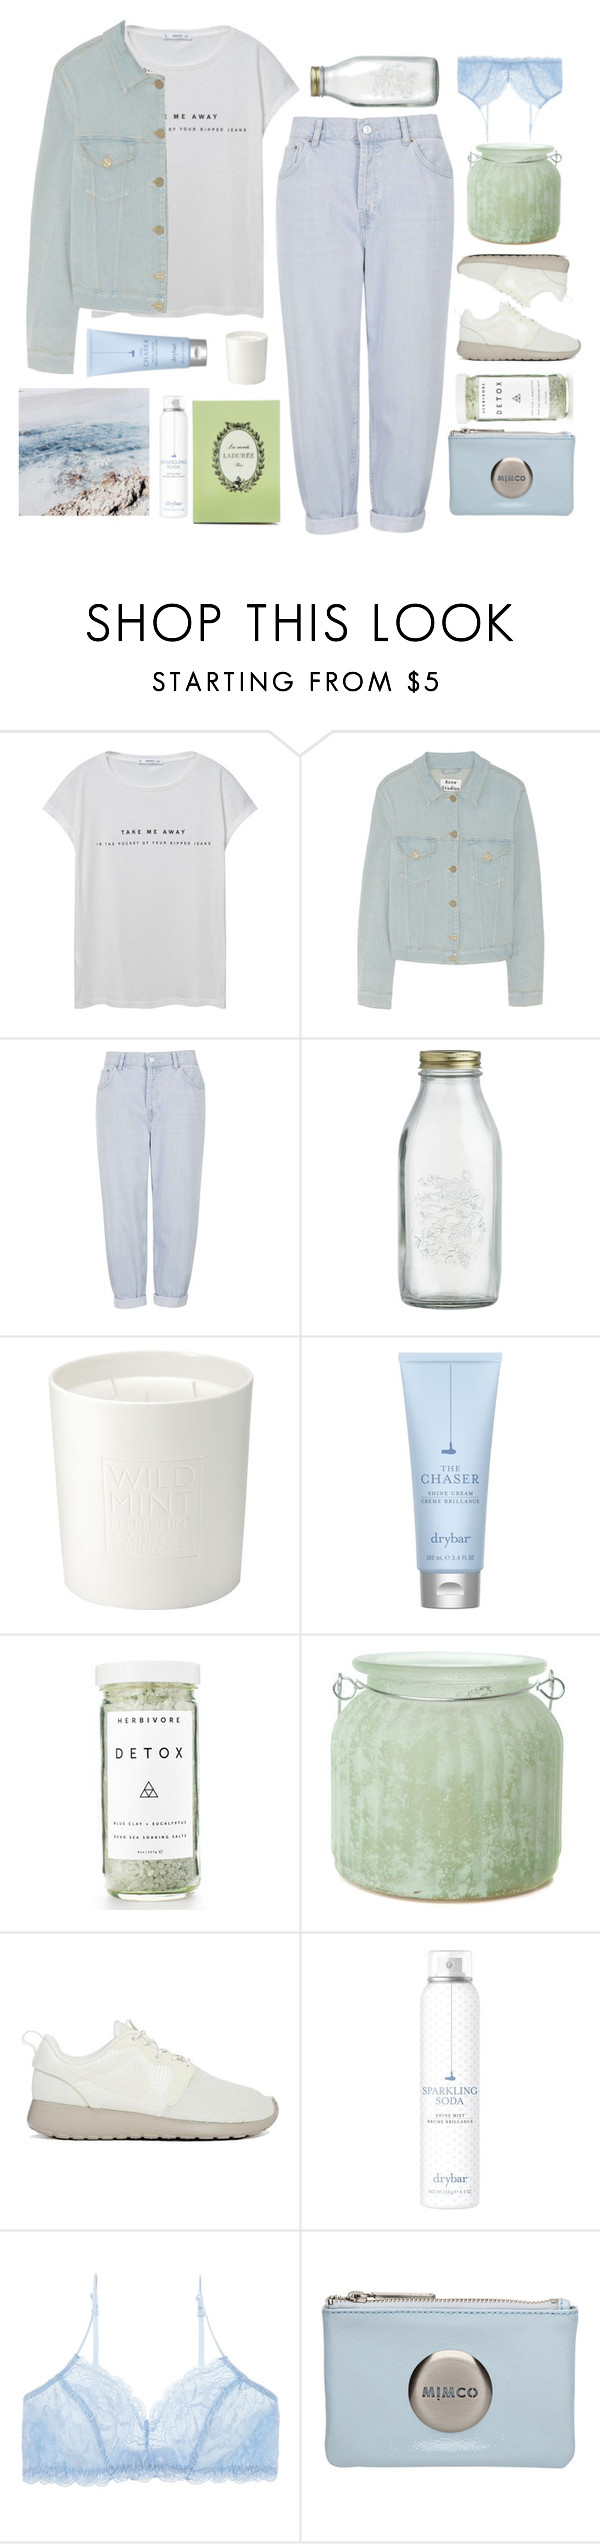 """Untitled #2567"" by tacoxcat ❤ liked on Polyvore featuring MANGO, Acne Studios, Topshop, Crate and Barrel, The White Company, Drybar, Herbivore, Ladurée, The Amazing Flameless Candle and NIKE"